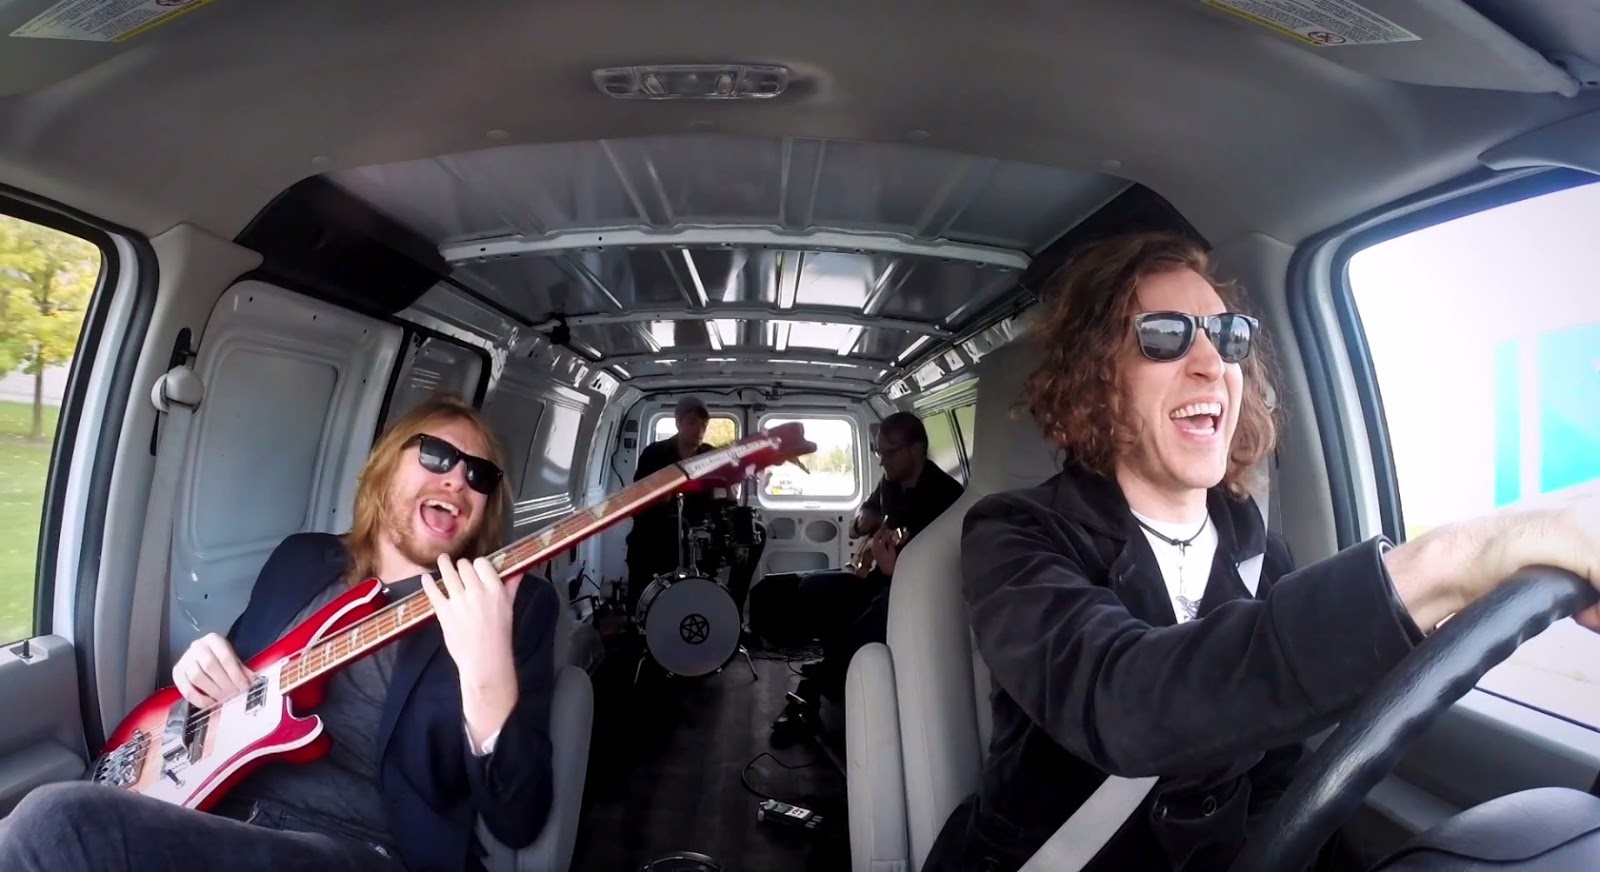 A four-piece band driving in a van together. Everyone, except the driver is playing an instrument. In the passenger seat is the bass player, and in the back are the drummer and guitar player.